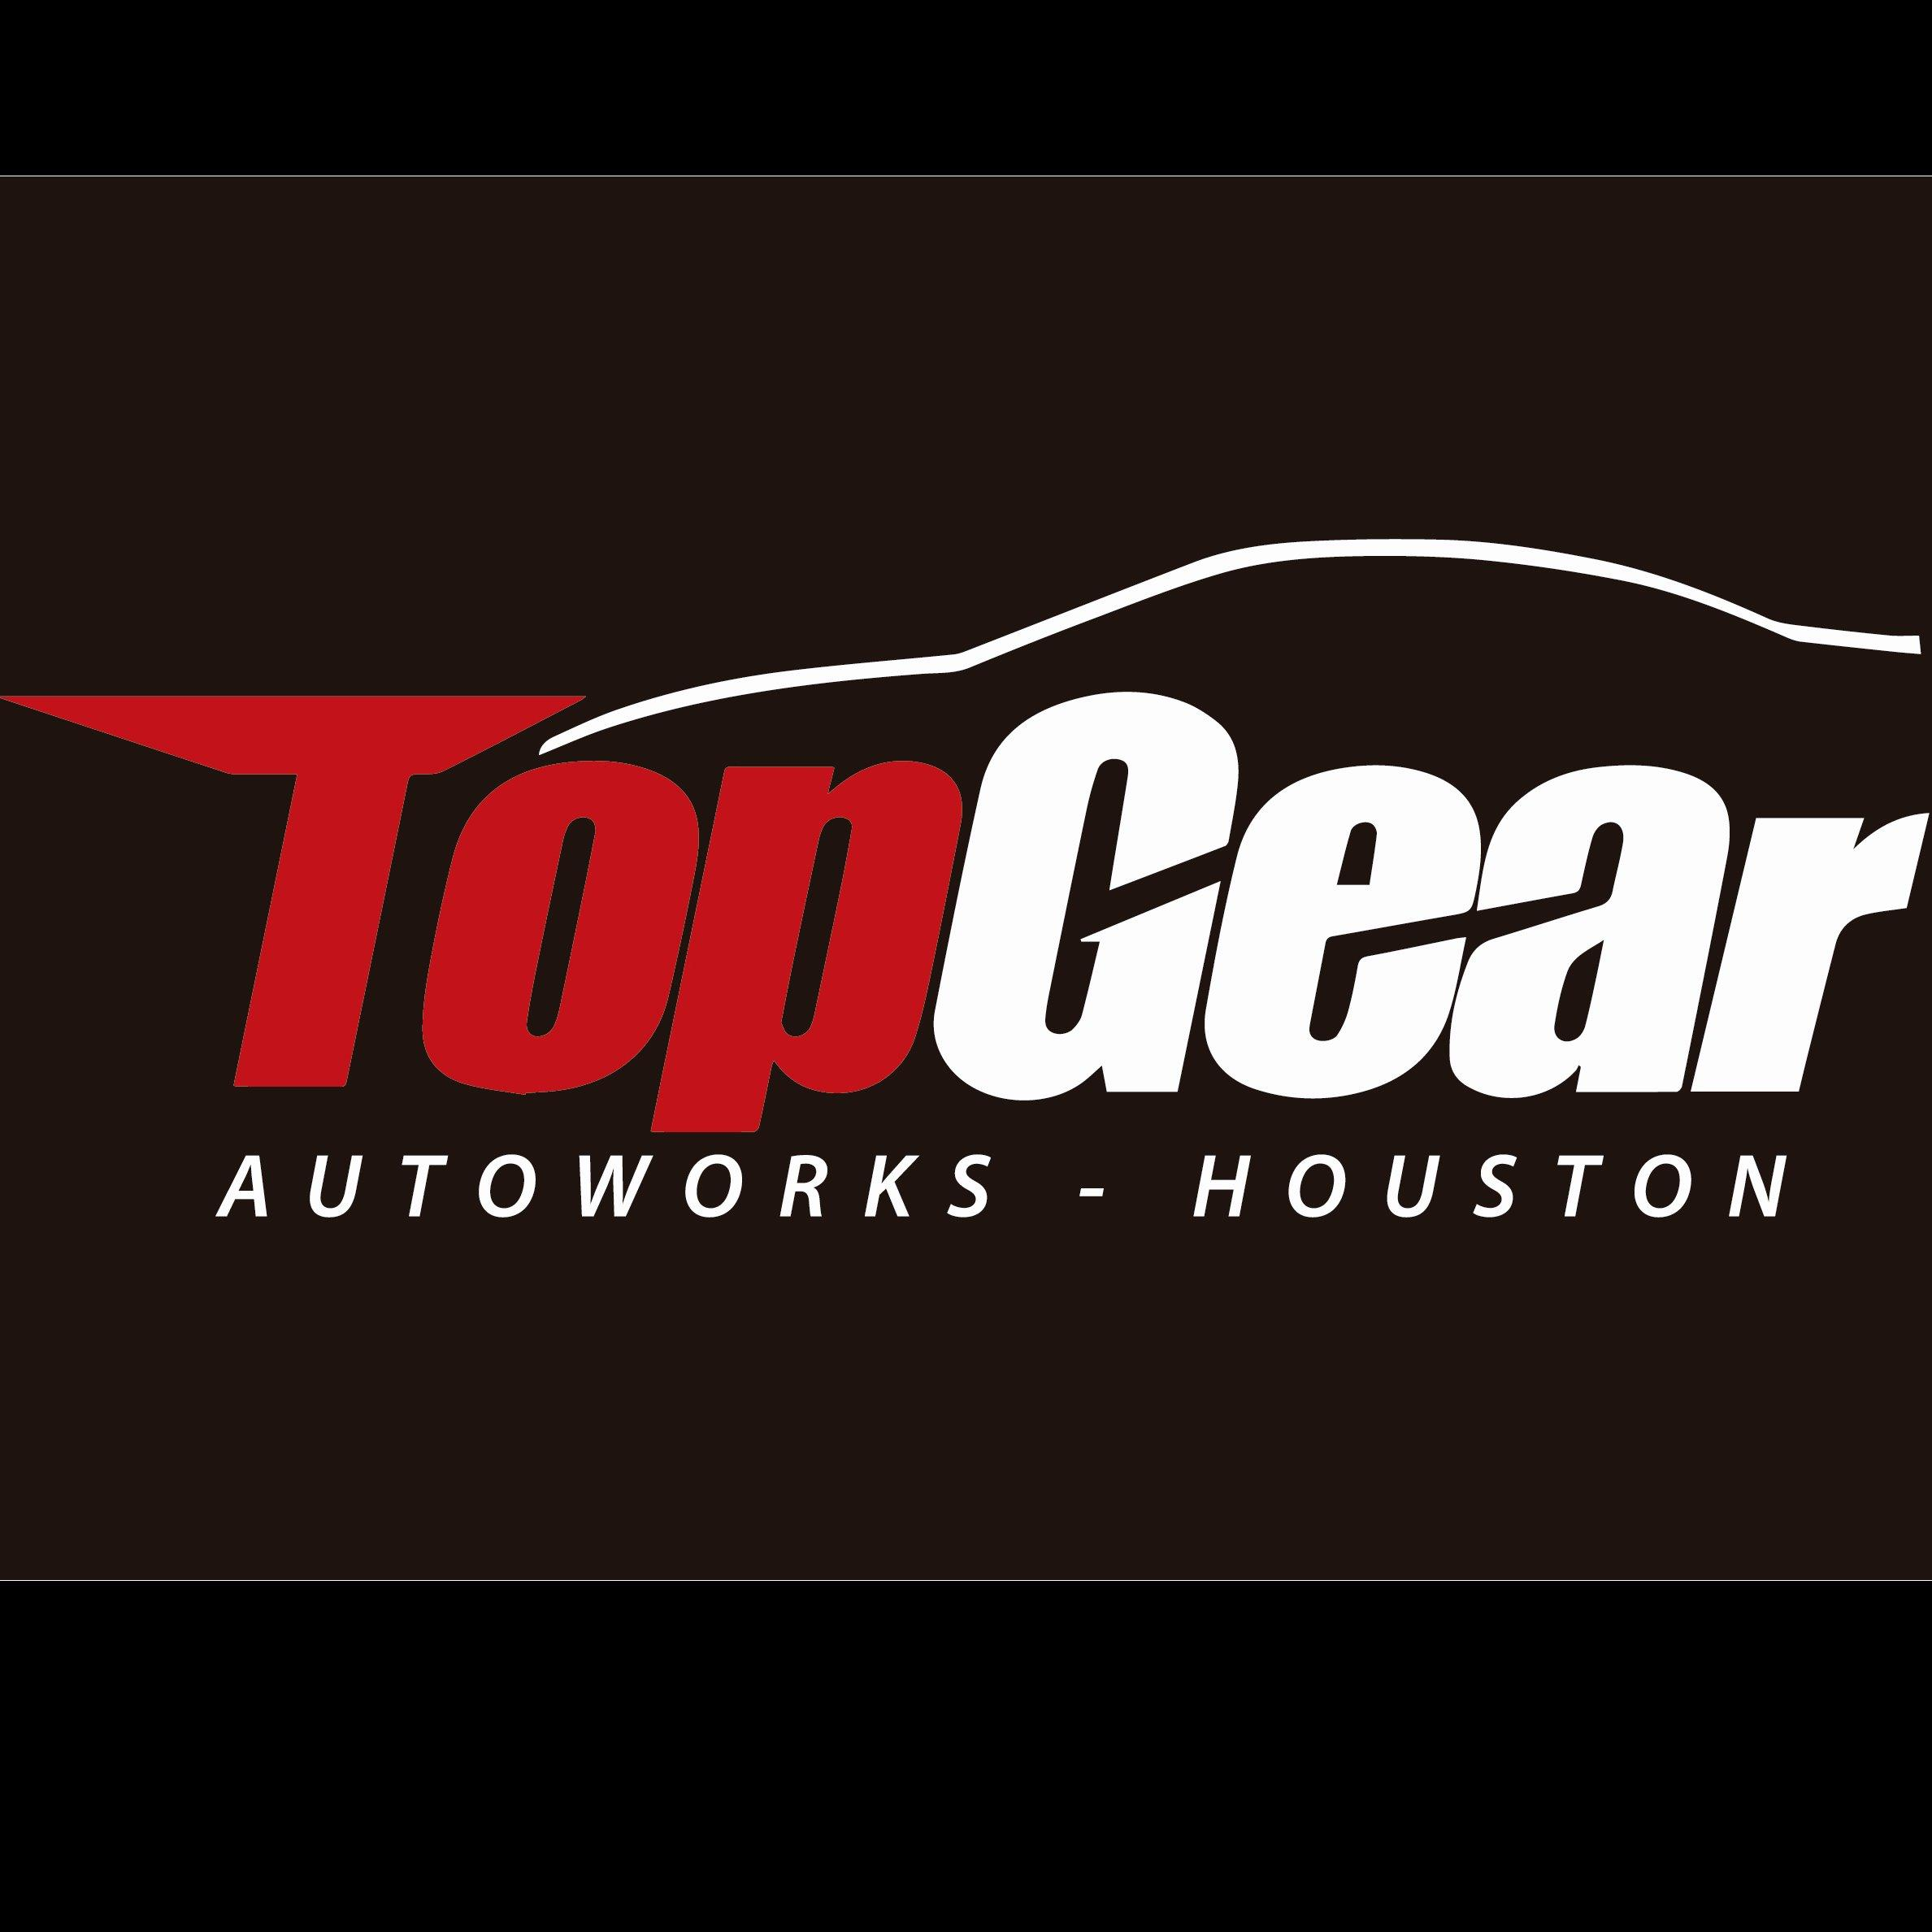 Topgear Autoworks